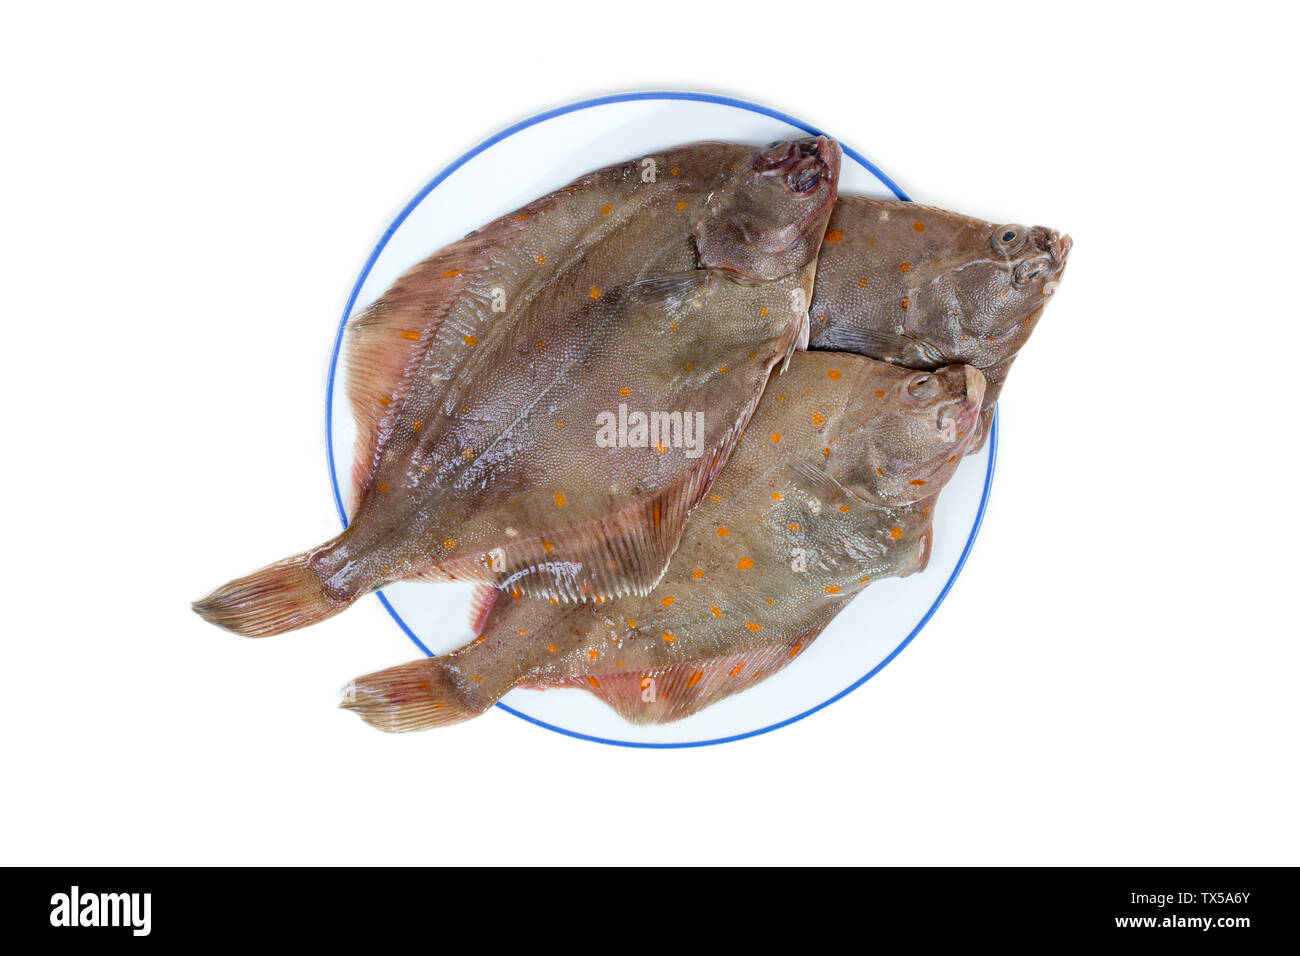 Whole Plaice flatfish in a plate isolated on a white background. - Stock Image